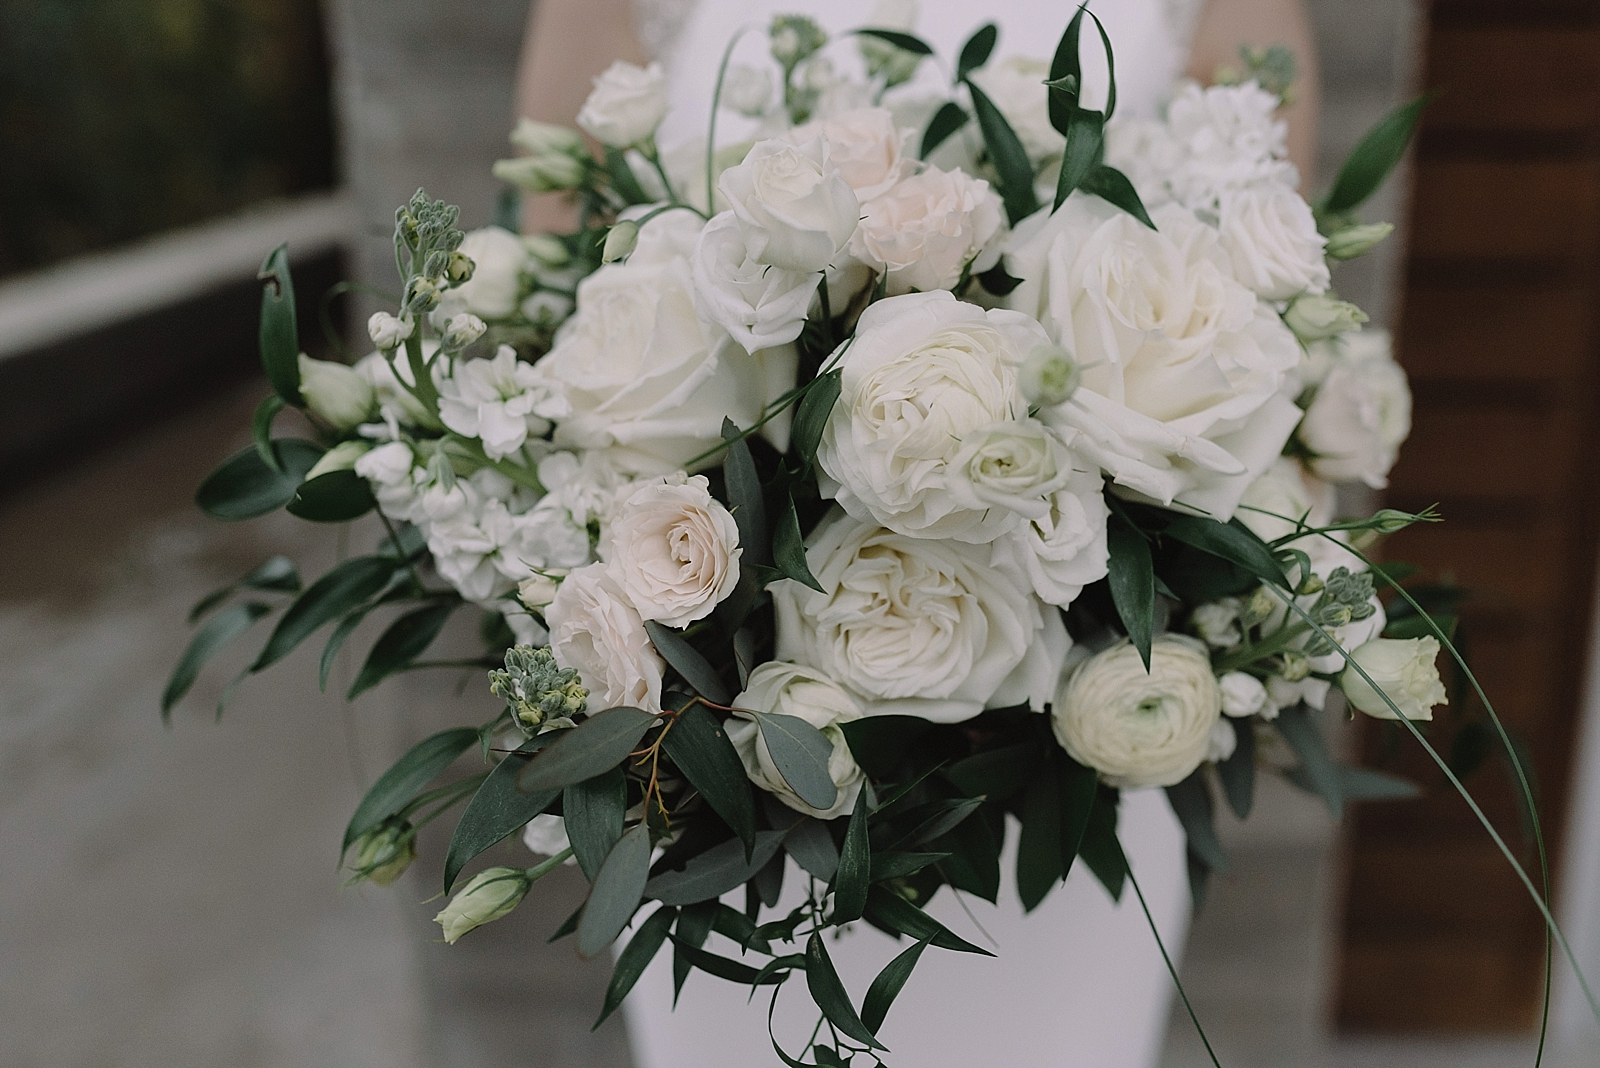 Textured greenery and green bridal bouquet details